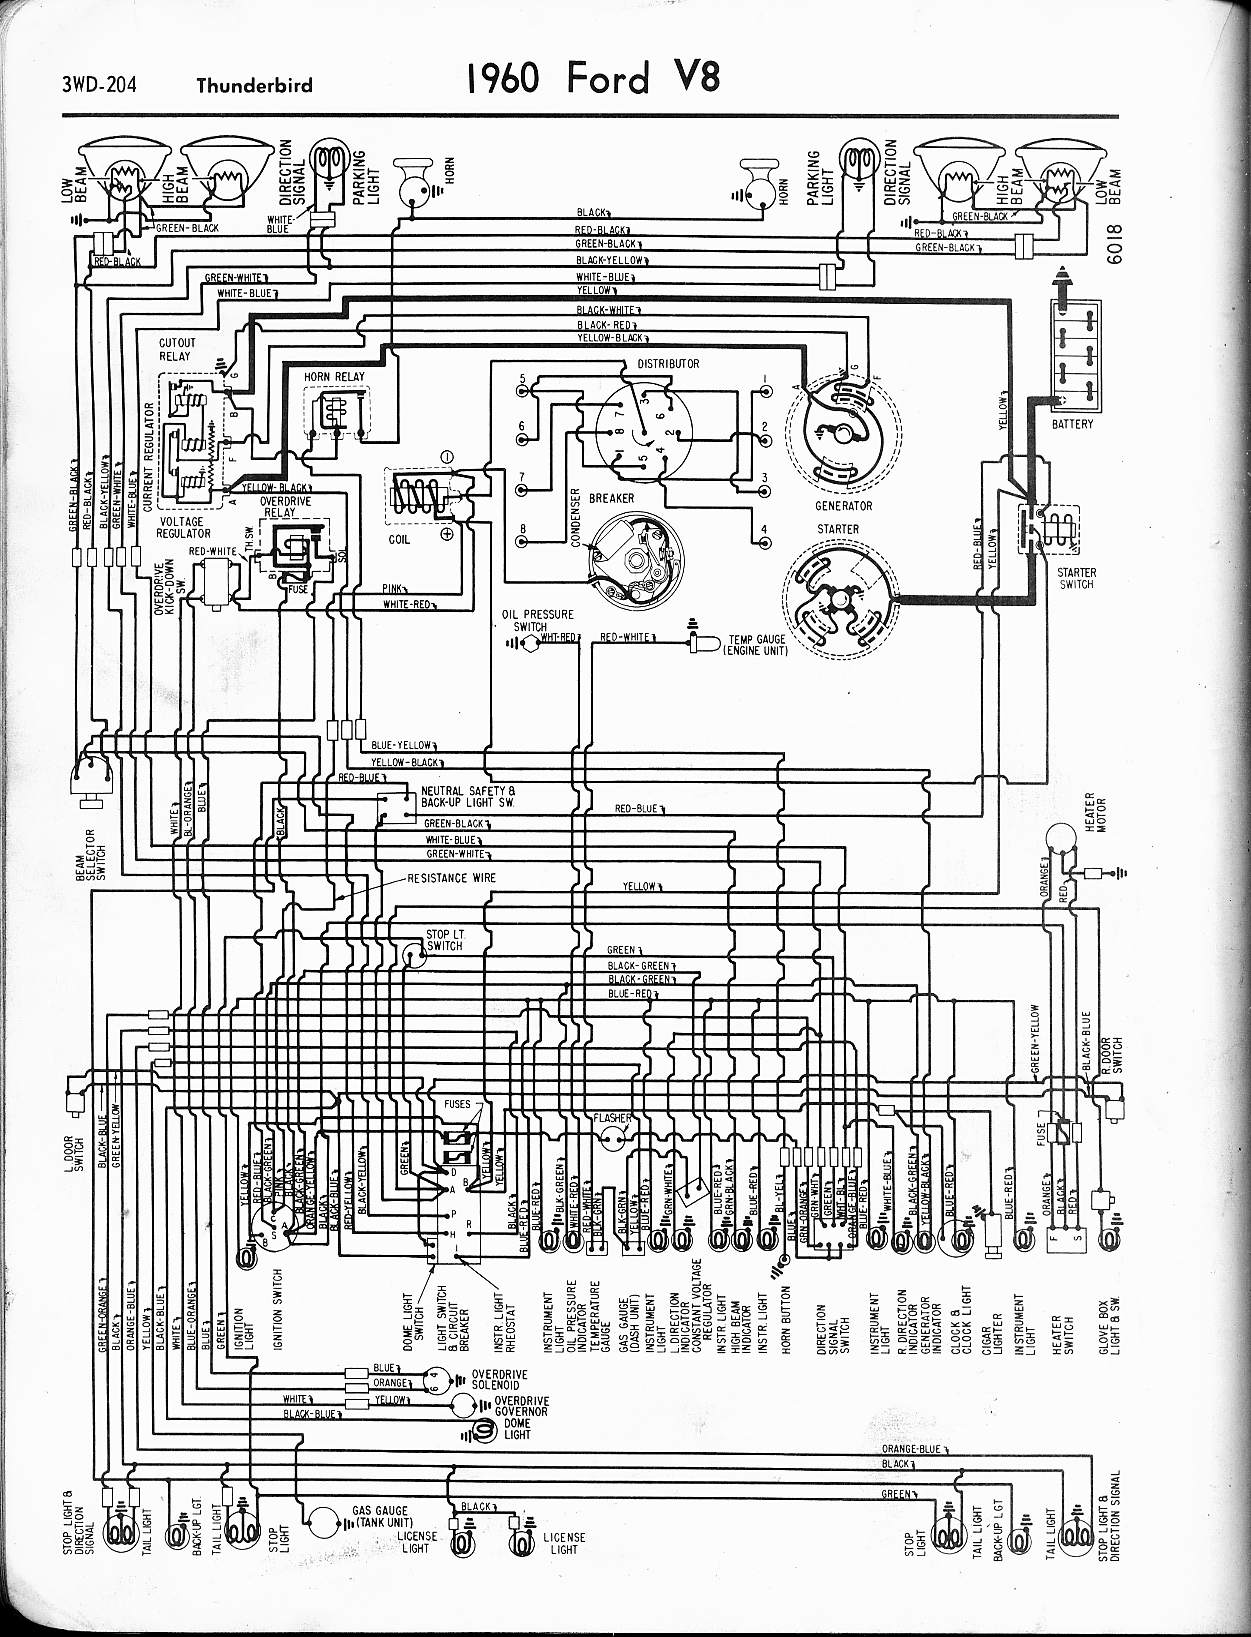 MWire5765 204 57 65 ford wiring diagrams 1988 ford thunderbird wiring diagram manual at virtualis.co